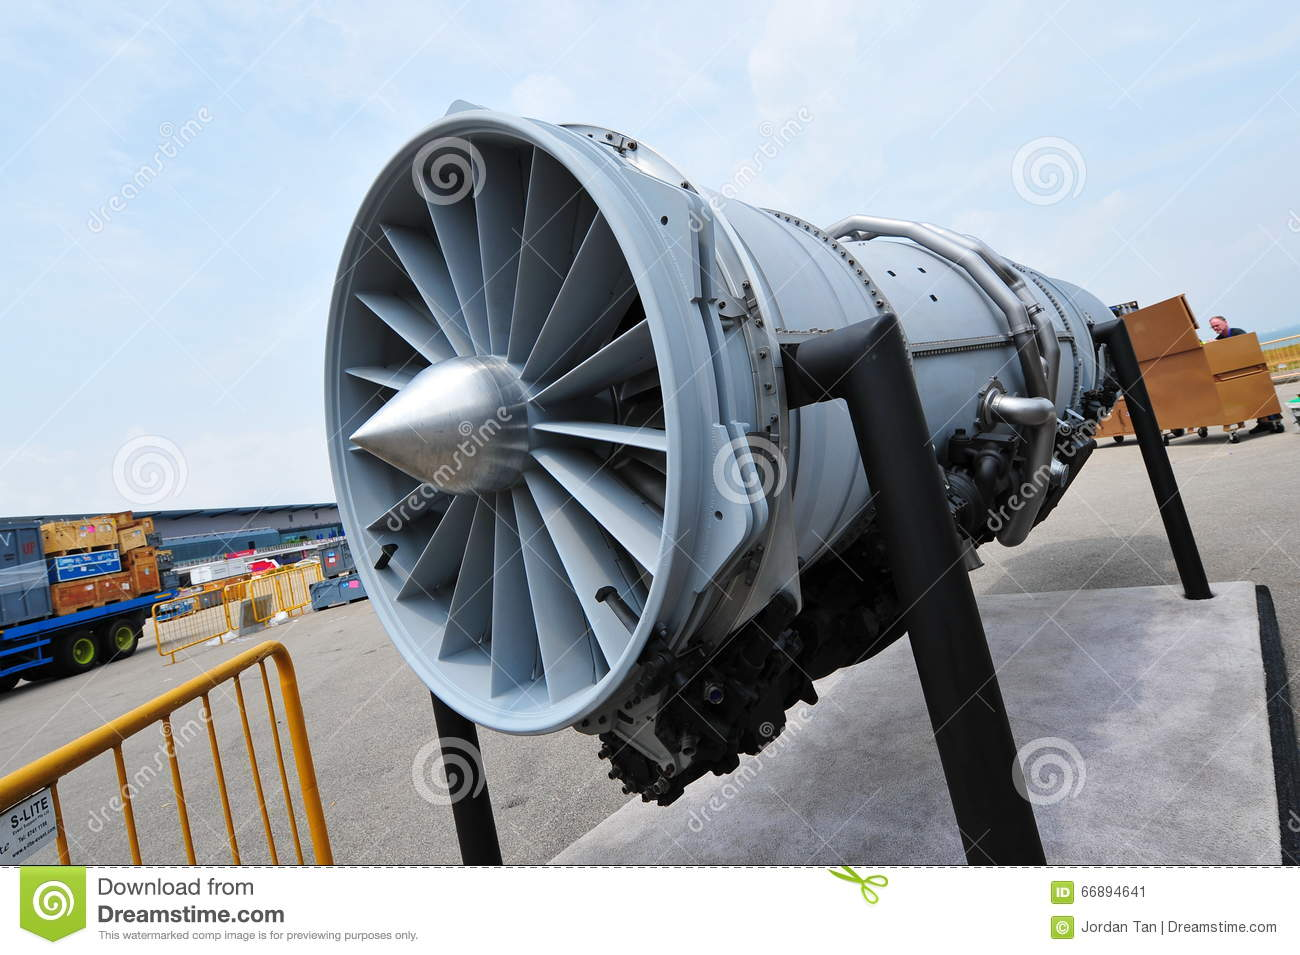 Pratt & Whitney F135 Jet Engine Of Lockheed Martin F-35